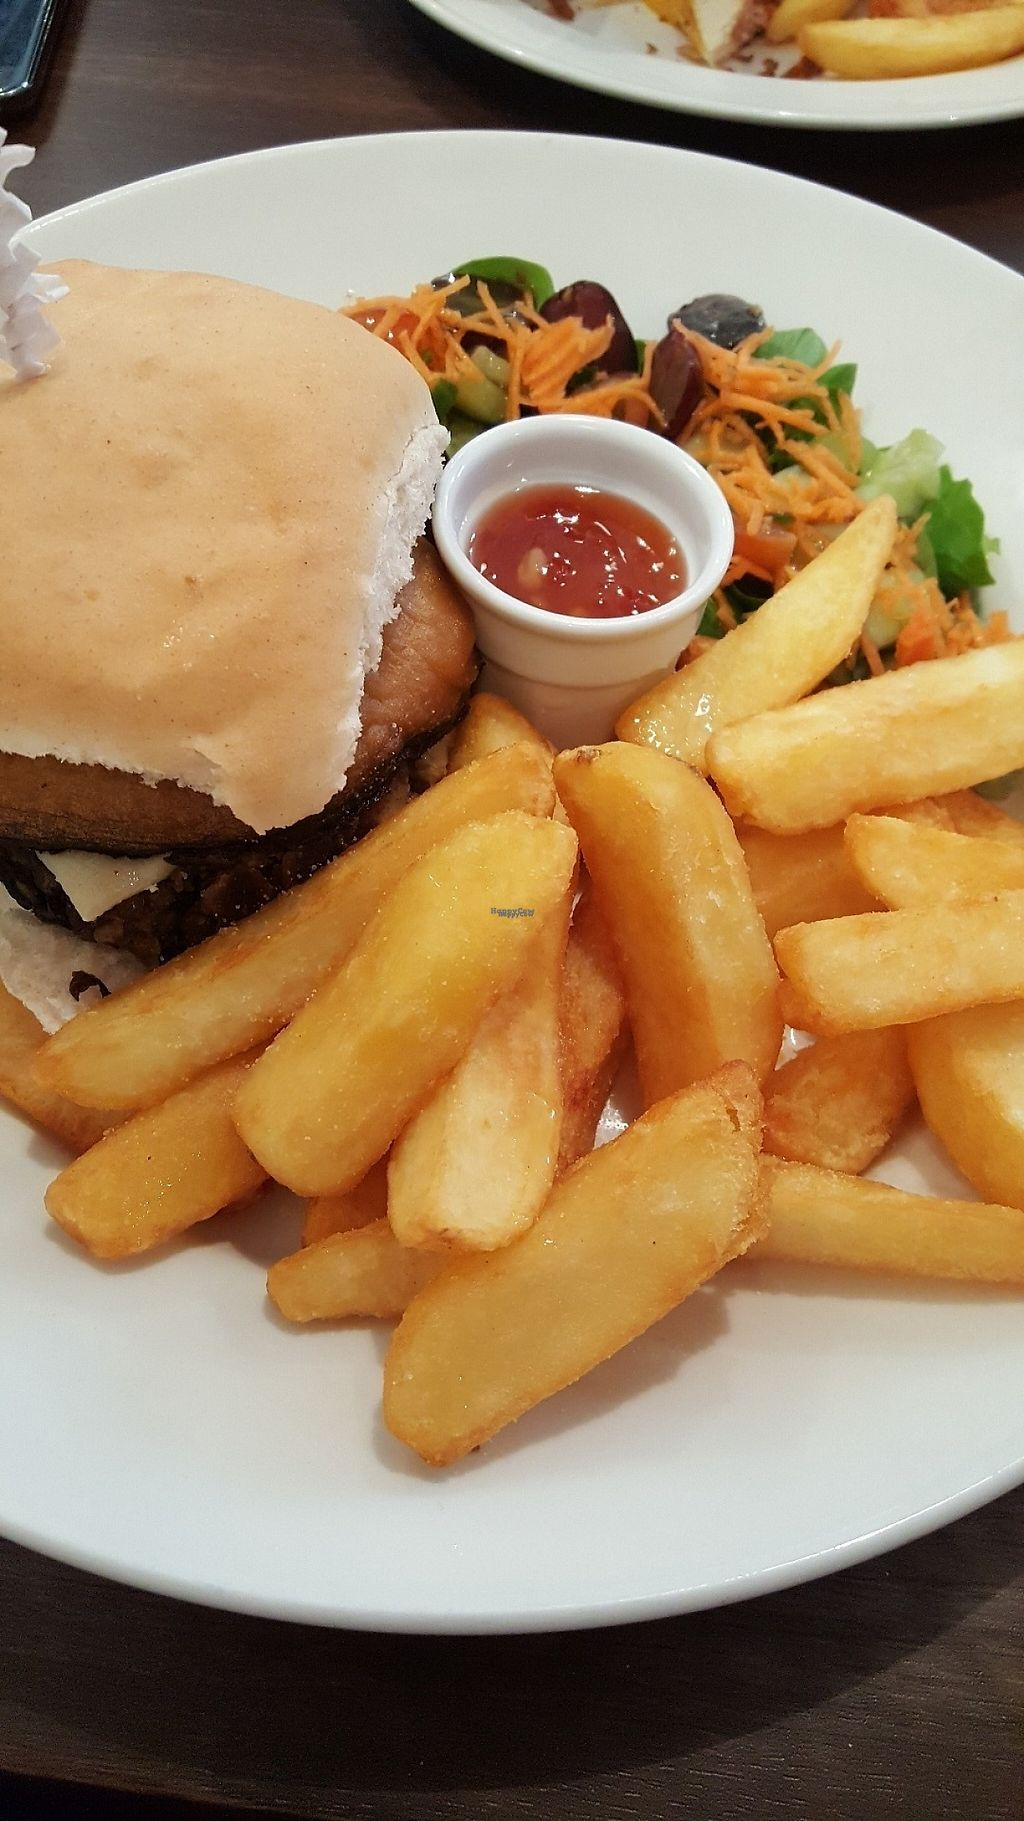 "Photo of Sinners Cafe  by <a href=""/members/profile/jansky7"">jansky7</a> <br/>The ultimate lentil burger with Portobello mushroom and vegan brie  <br/> April 25, 2017  - <a href='/contact/abuse/image/38242/252353'>Report</a>"